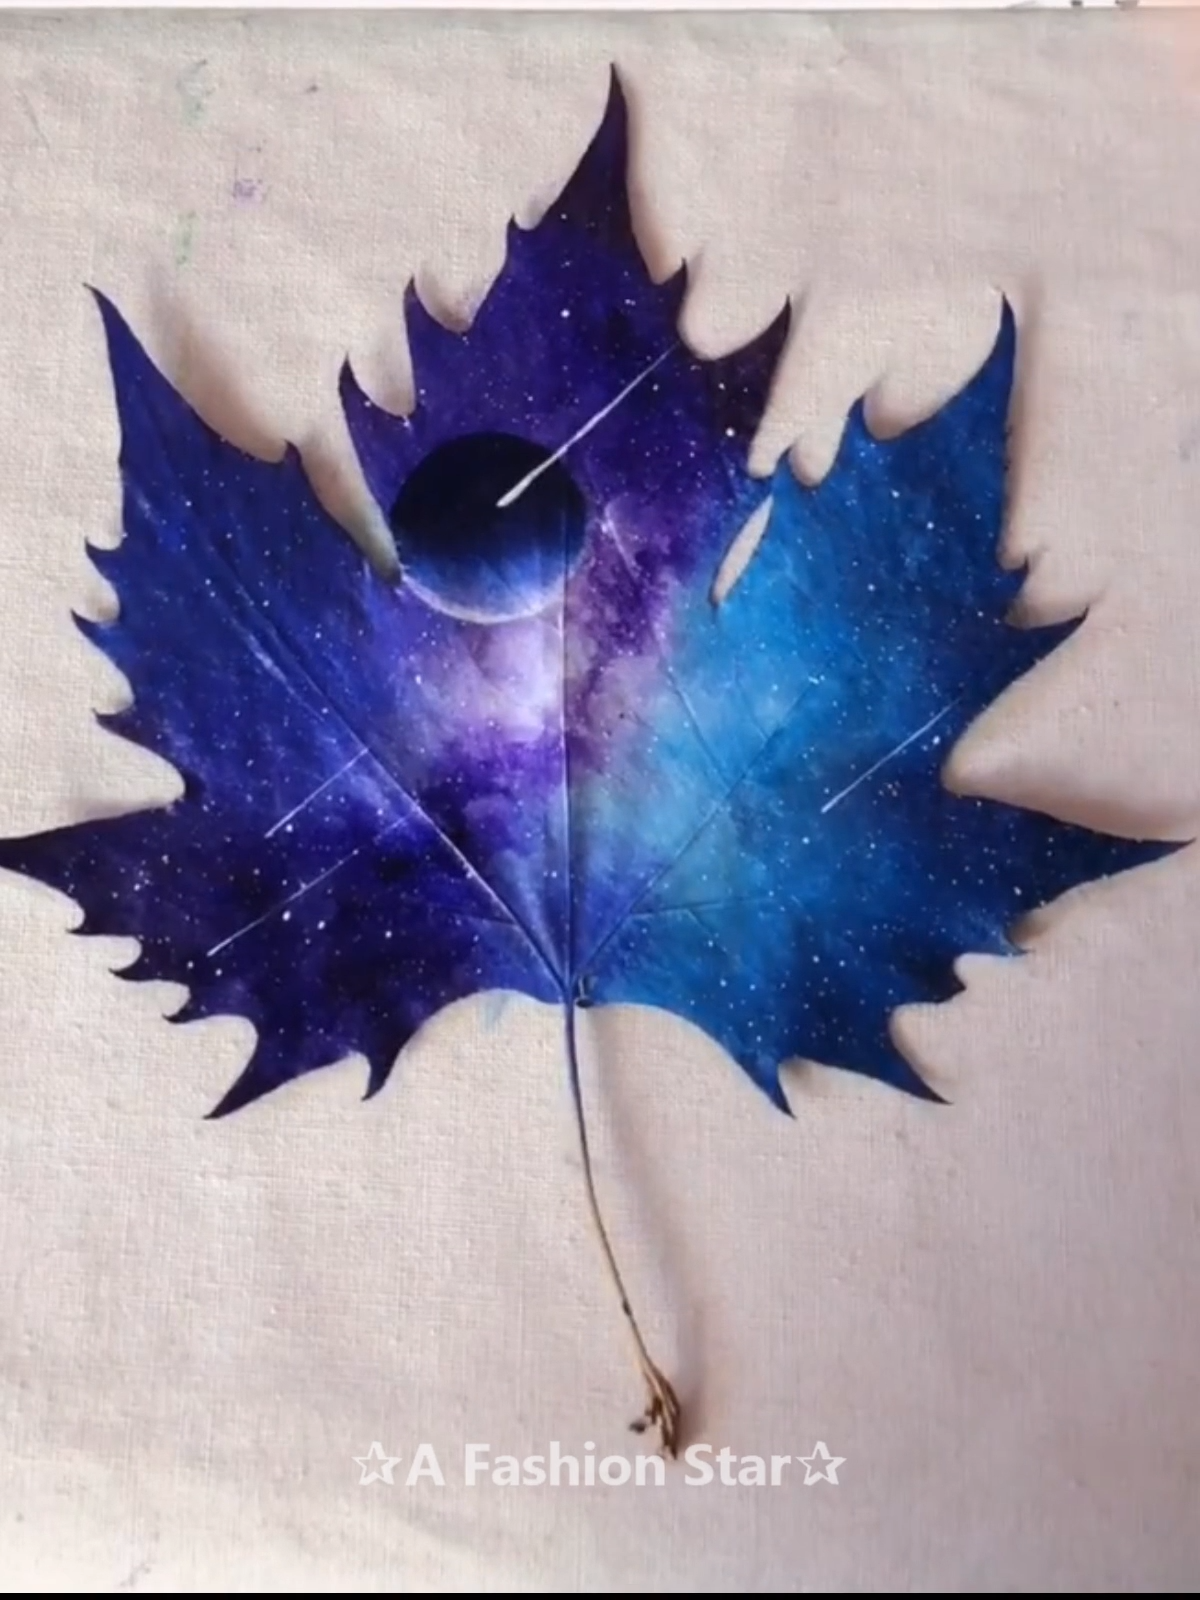 7 Easy Incredible Art On Leaves - Leaf Painting Ideas For Home Decor #modernhousedesigninterior